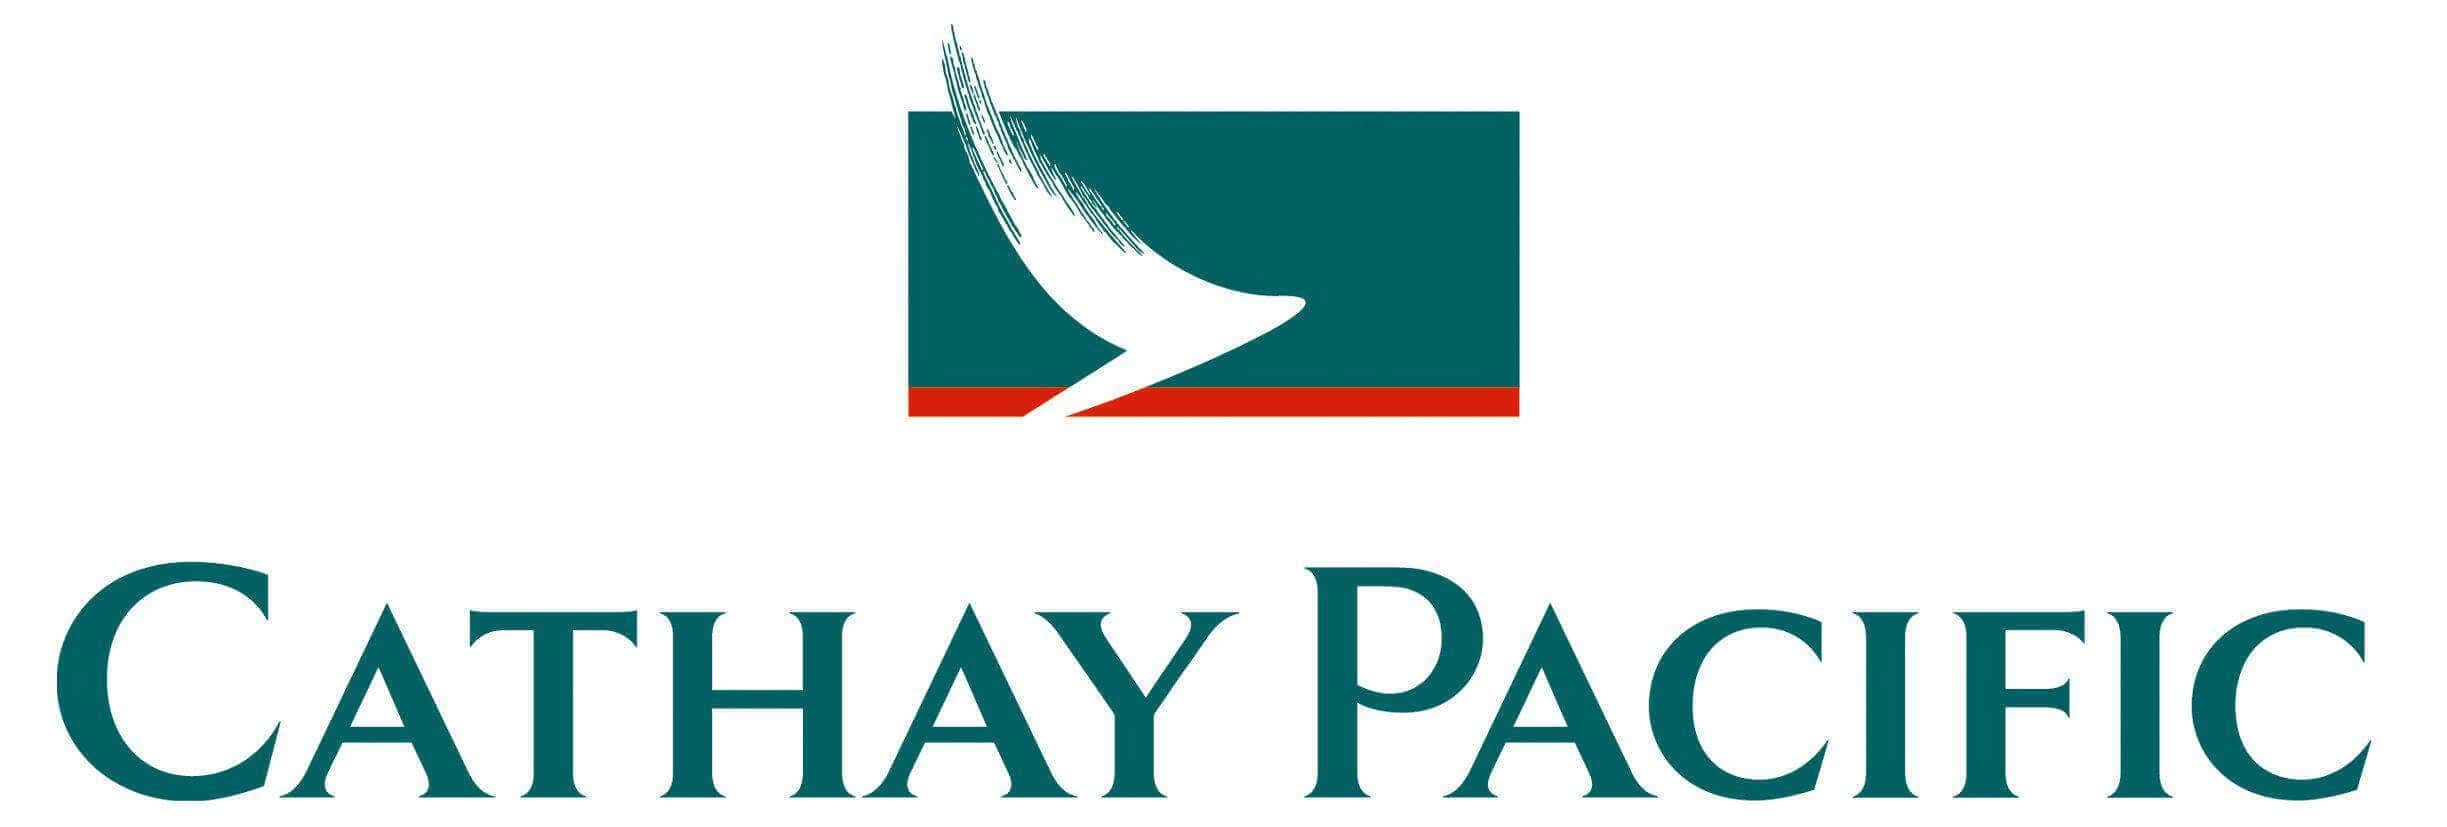 Cathay-Pacific logo